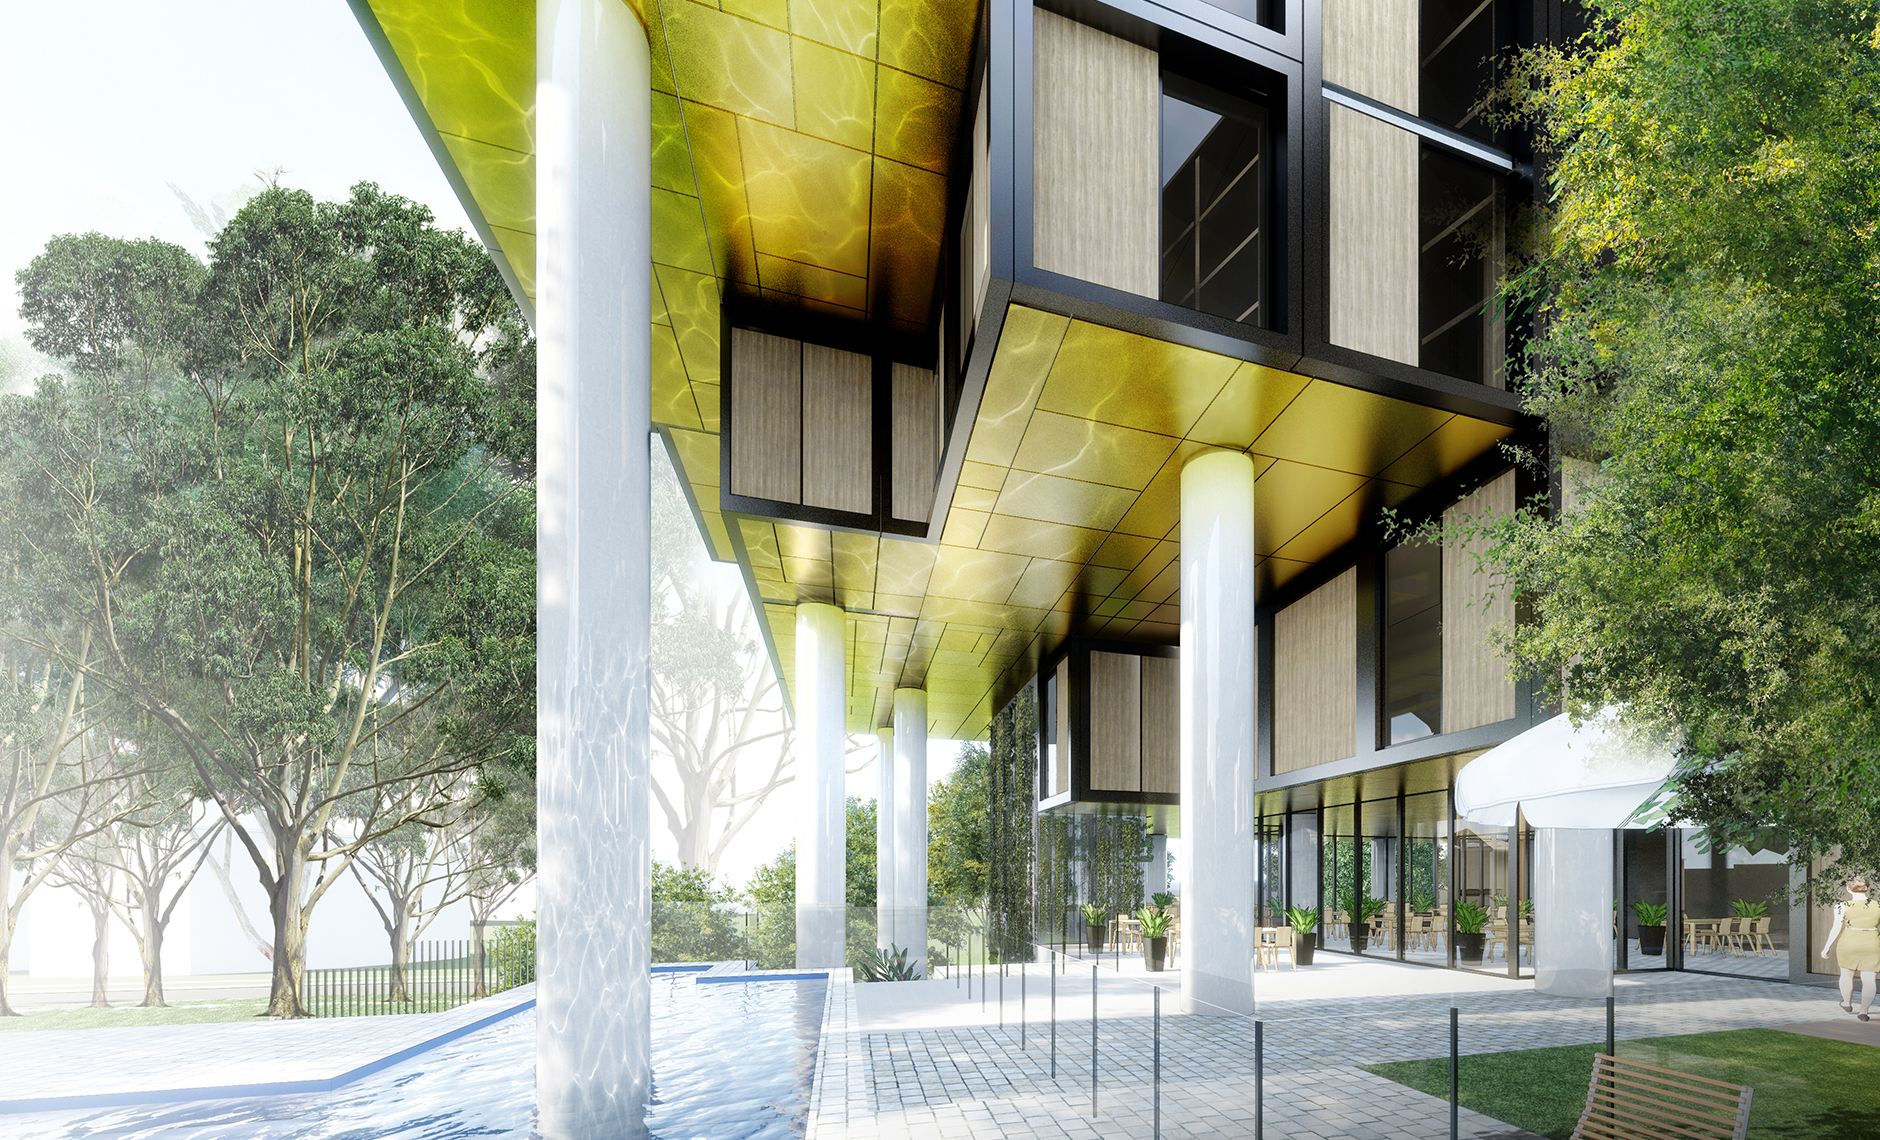 Student Accomodation project in Maquarie Park NSW